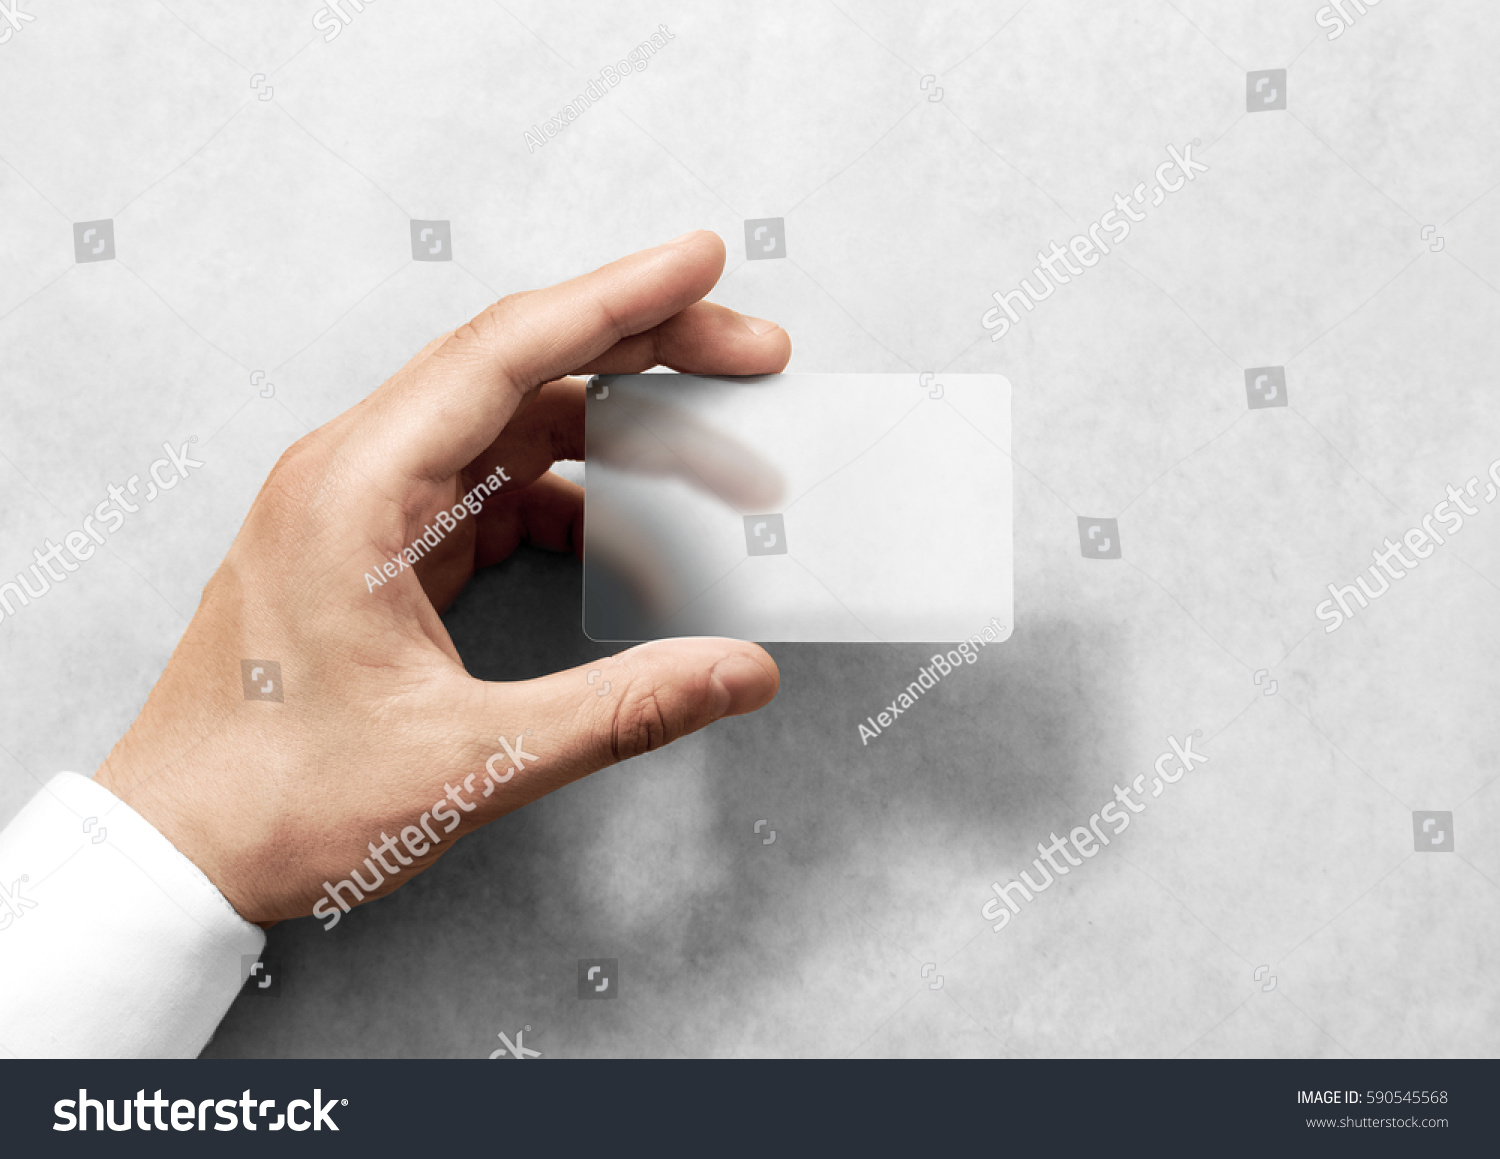 Hand hold blank translucent card mockup with rounded corners. Plain clear call-card mock up template holding arm. Plastic transparent acrylic namecard display front. #590545568